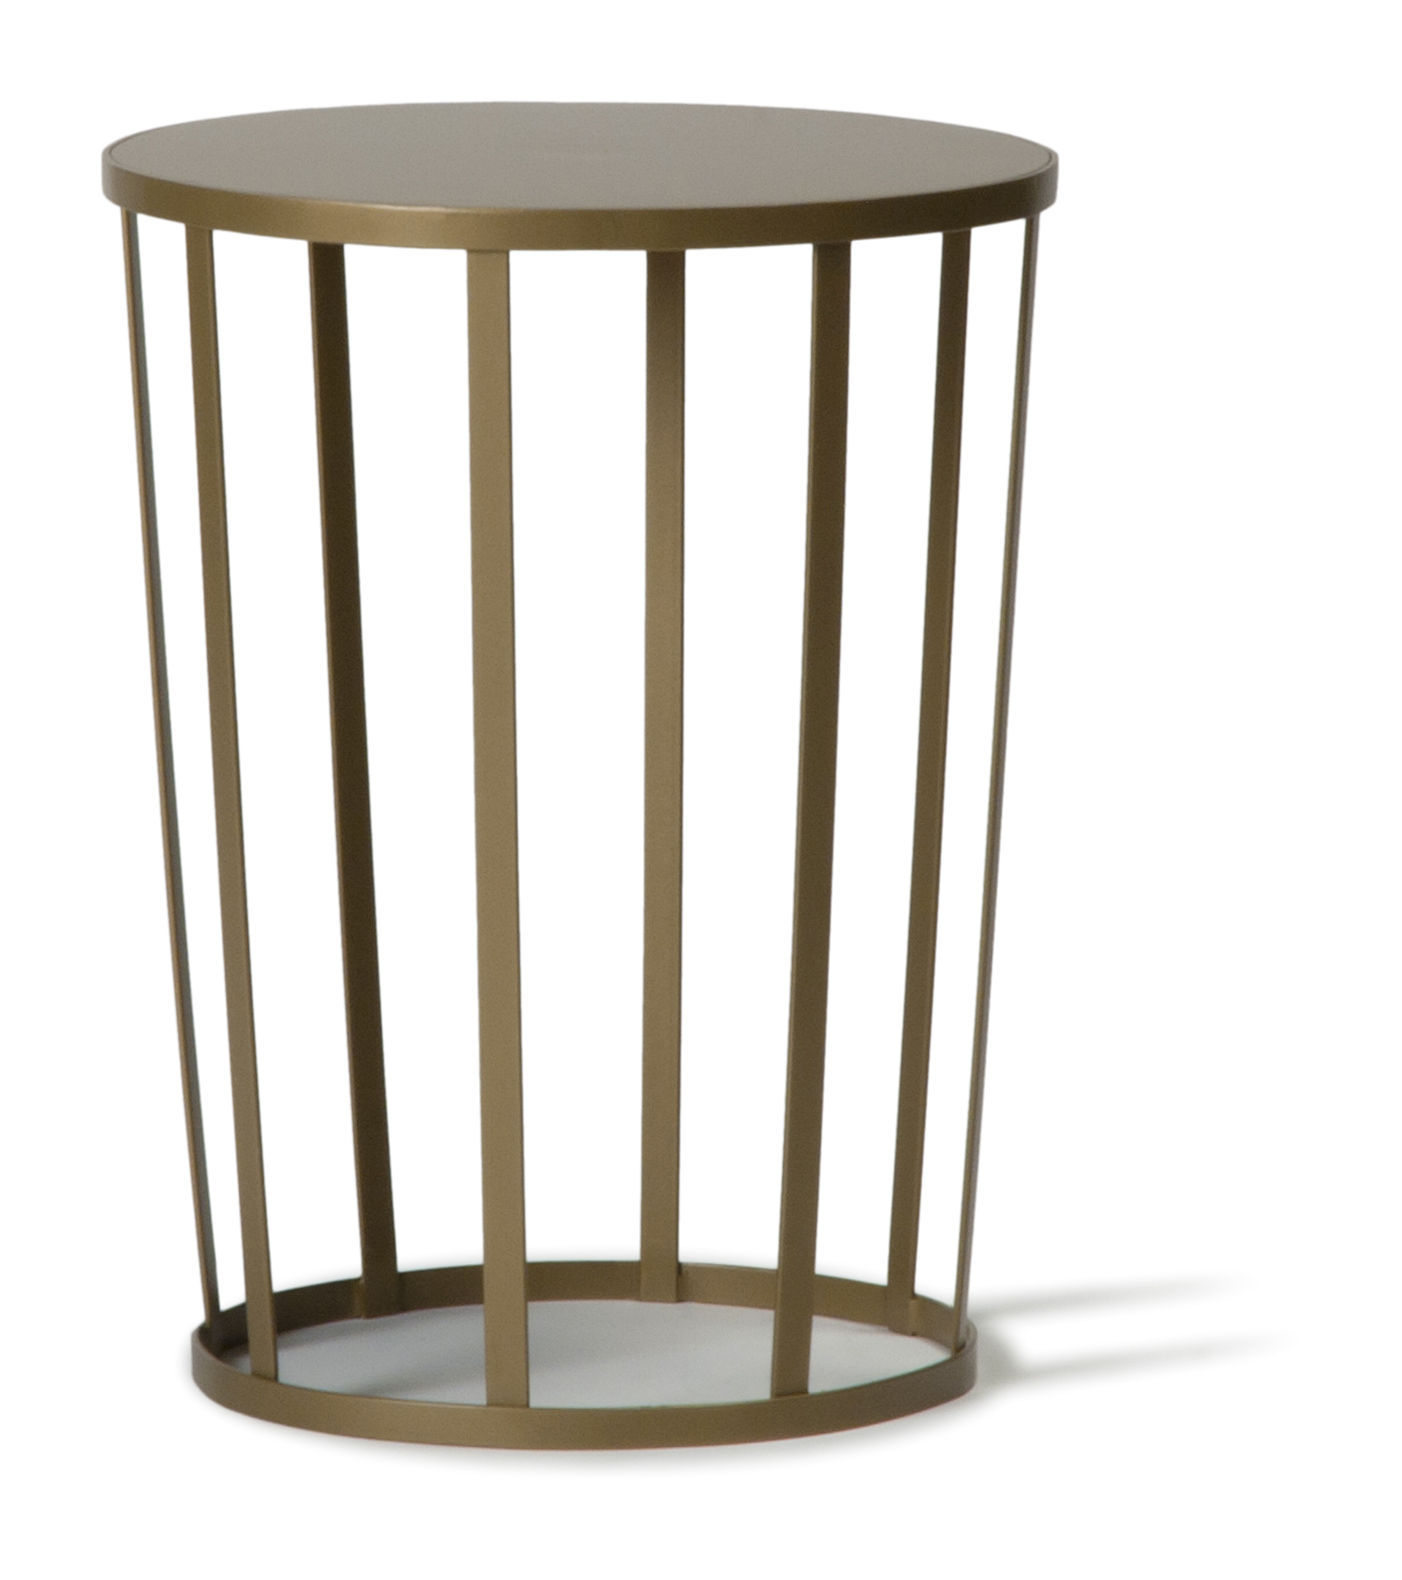 Furniture - Coffee Tables - Hollo End table - / Stool - H 44 cm by Petite Friture - Mat gold - Stainless steel